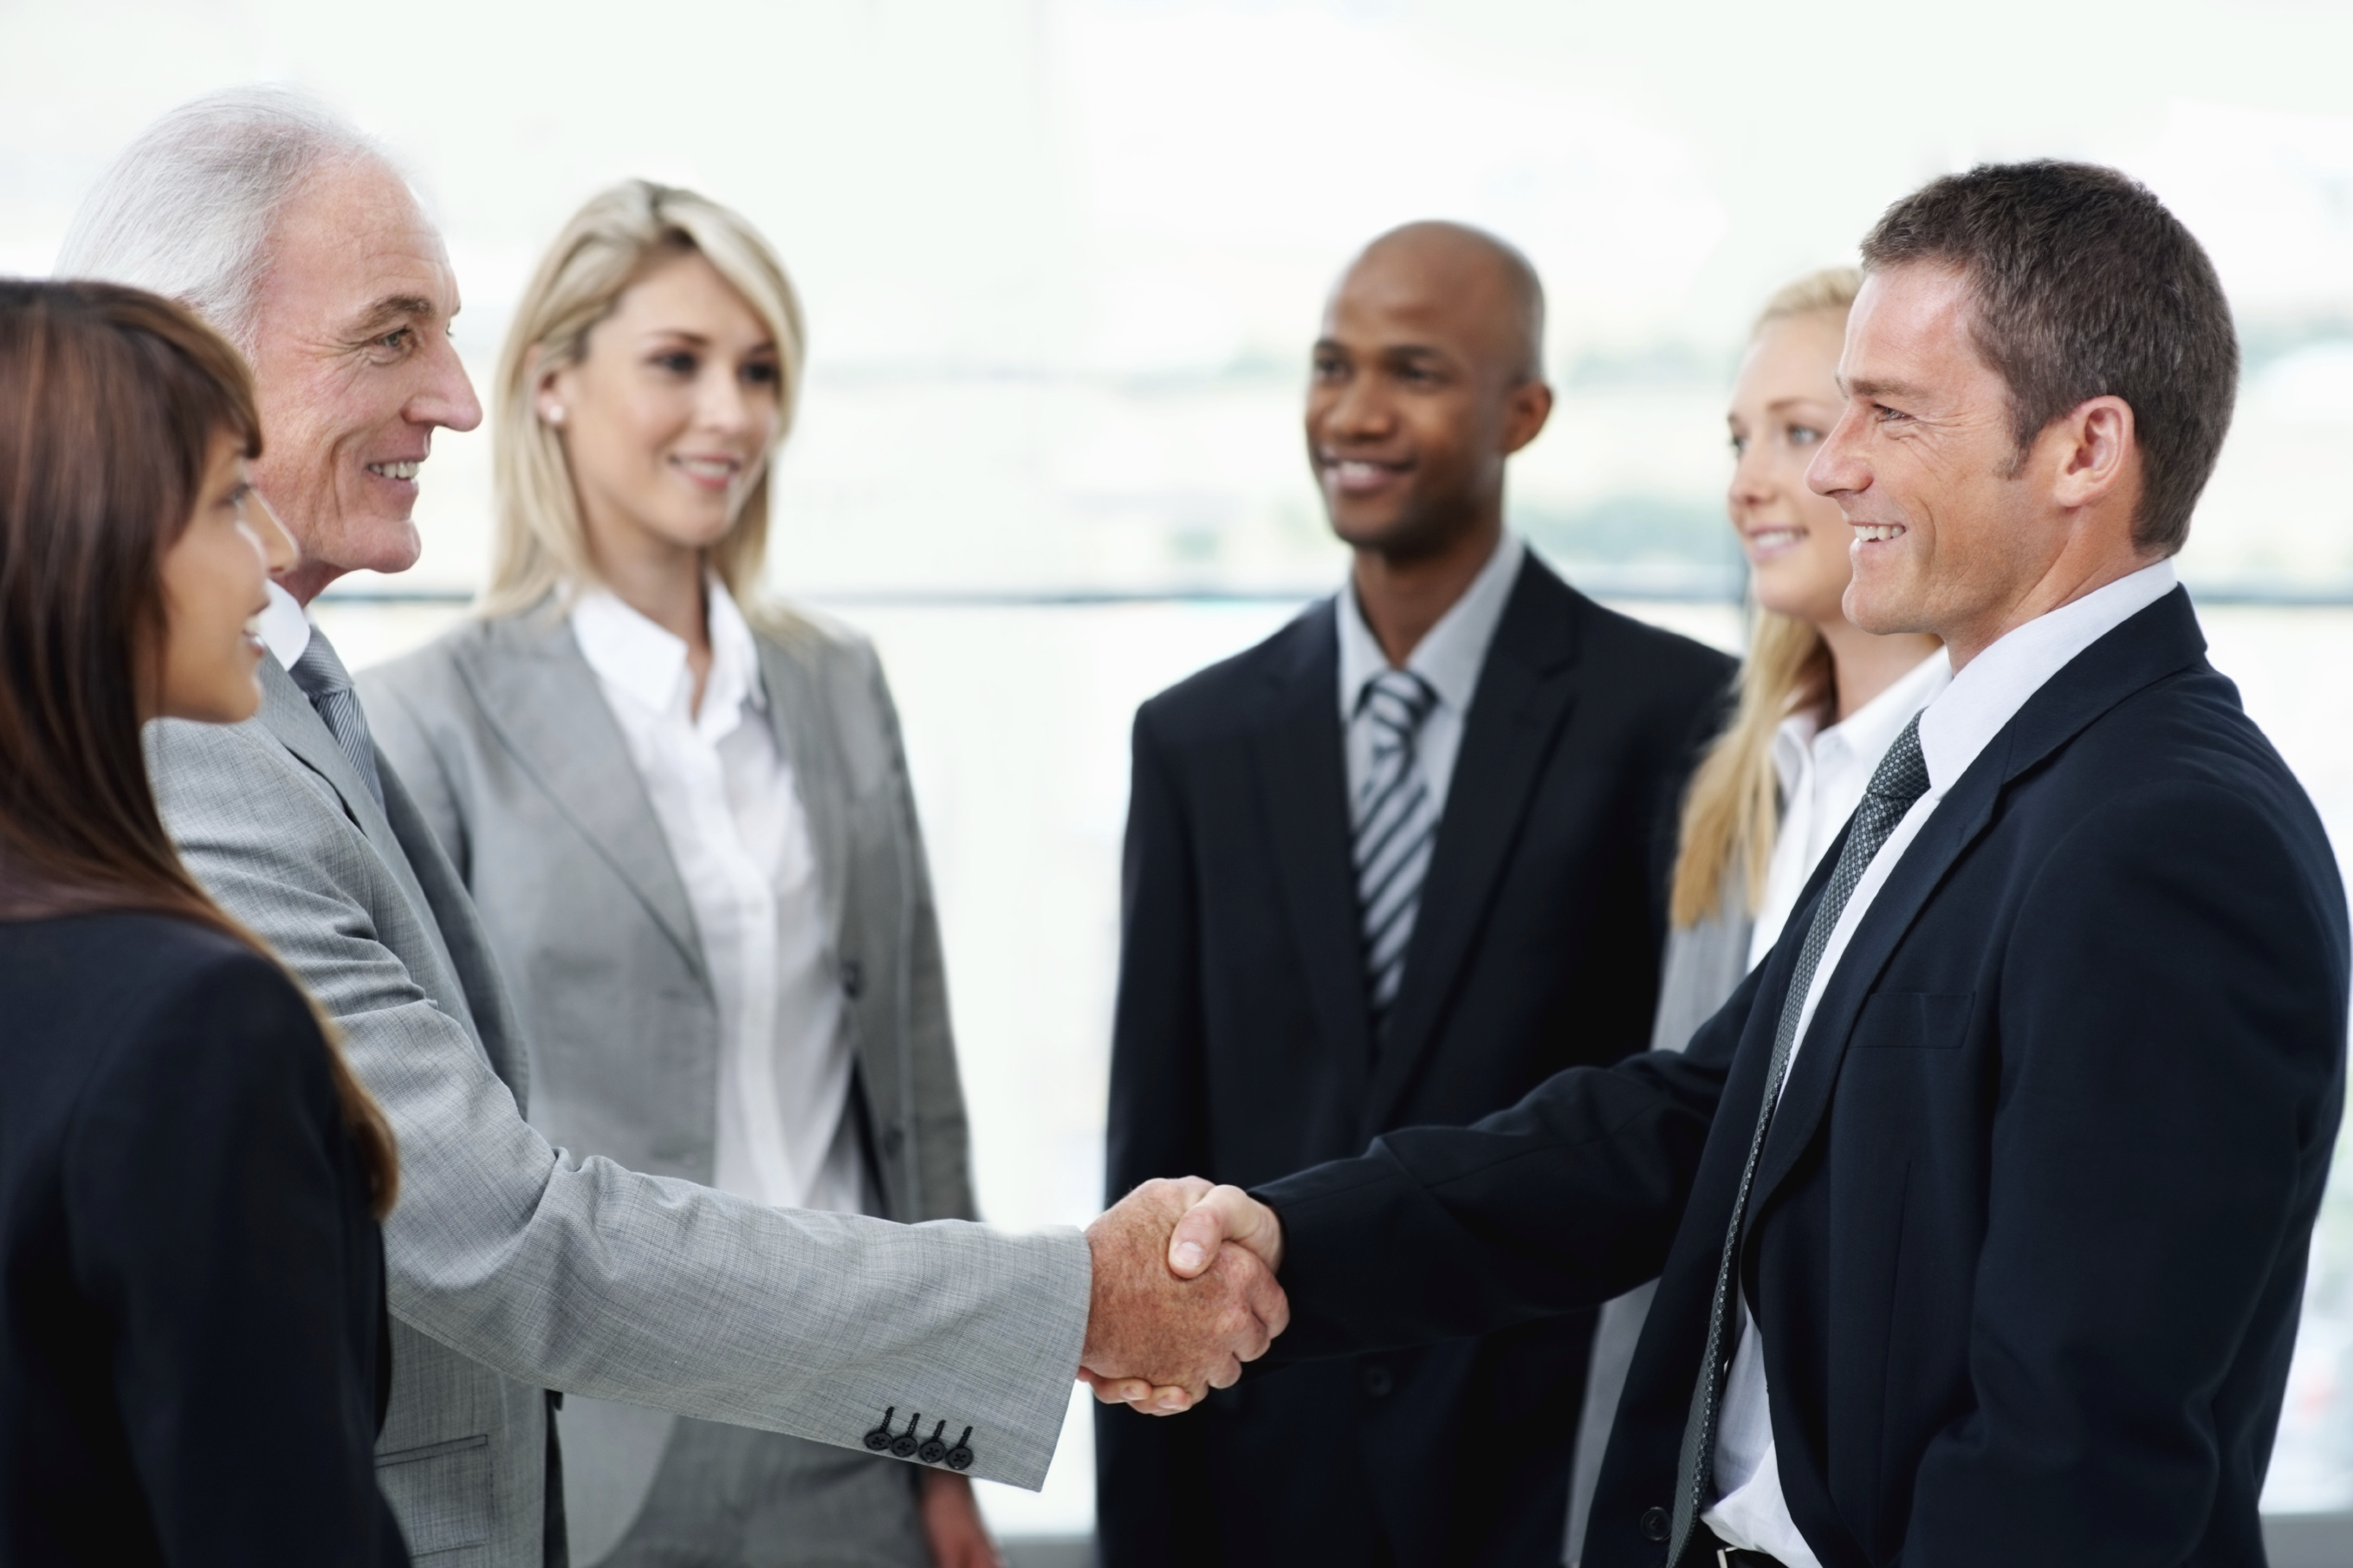 Senior business man handshaking with partner after striking a deal